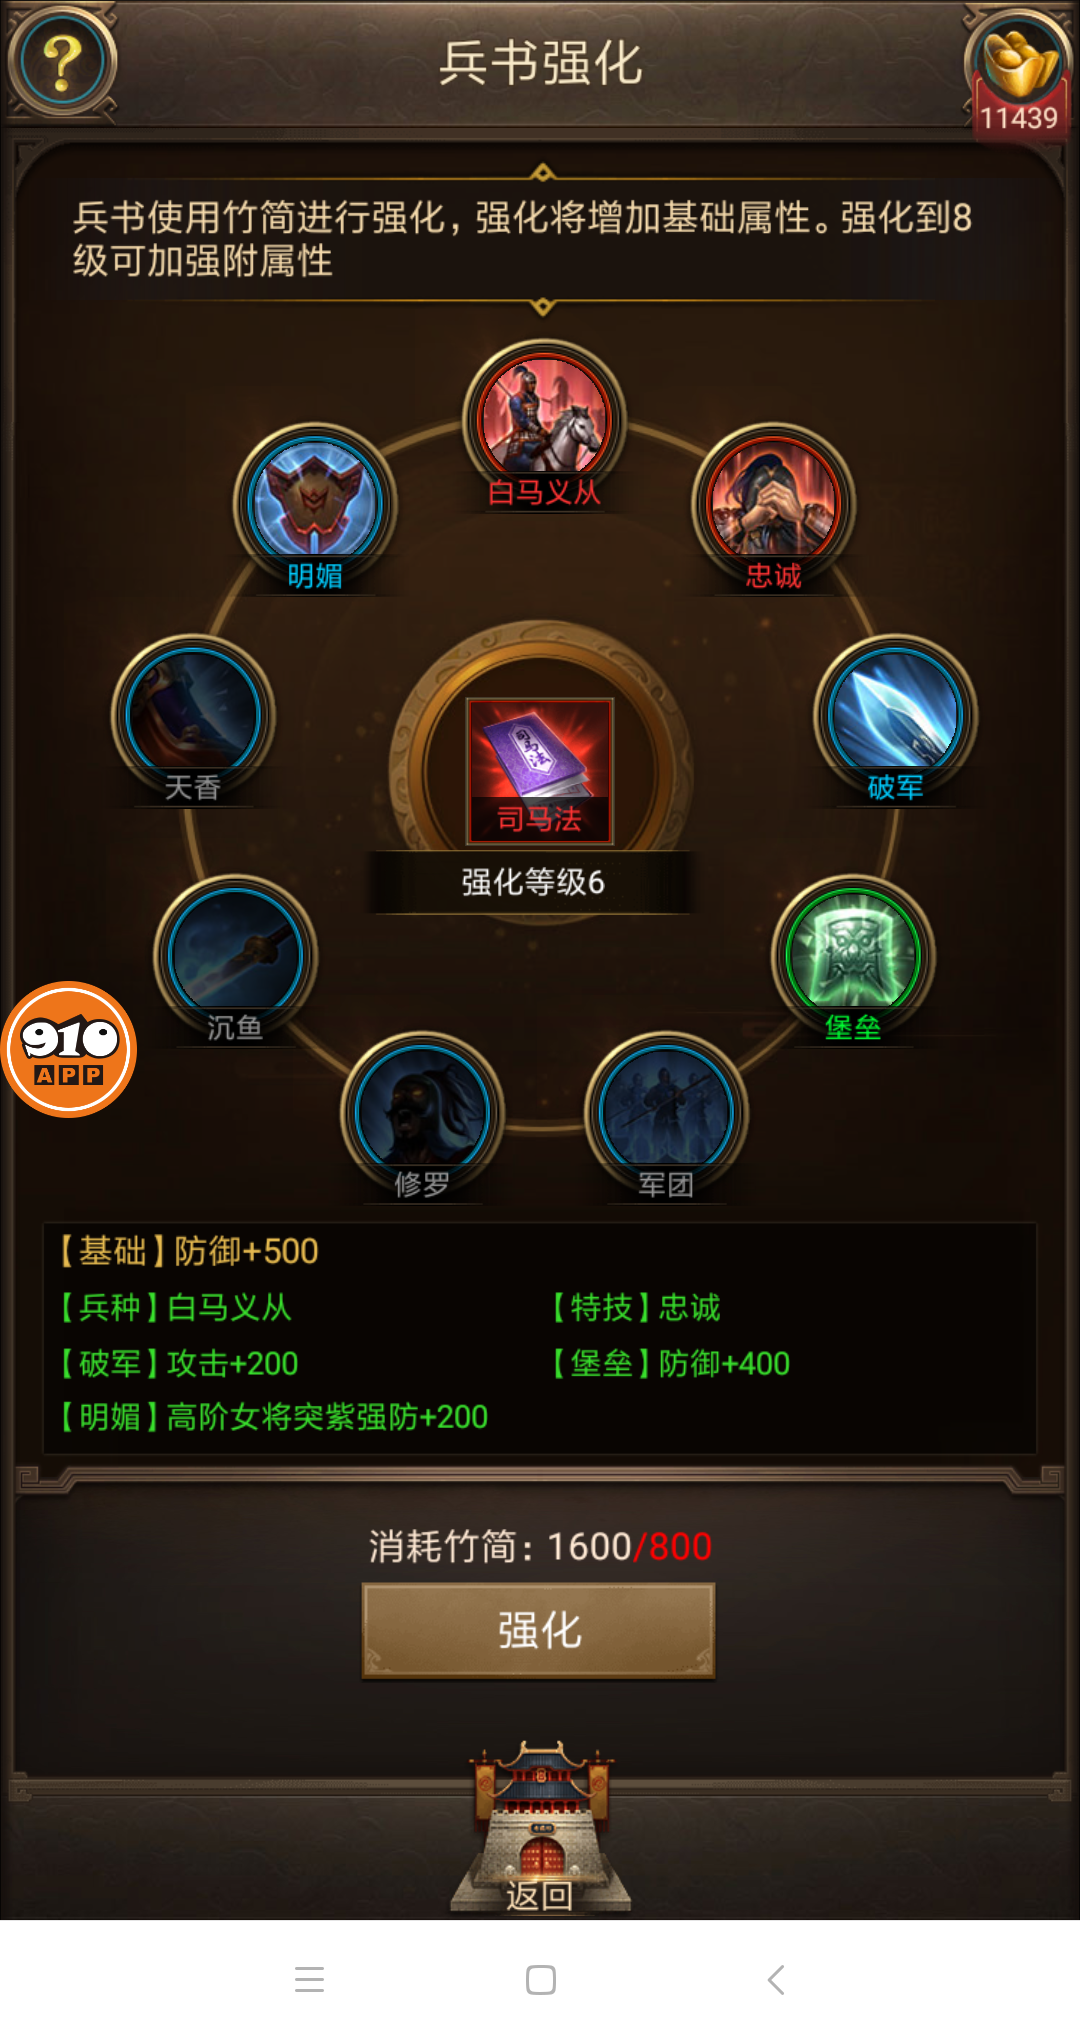 Screenshot_2018-10-15-21-26-51-349_com.juedigame.blzz.shoumeng.png